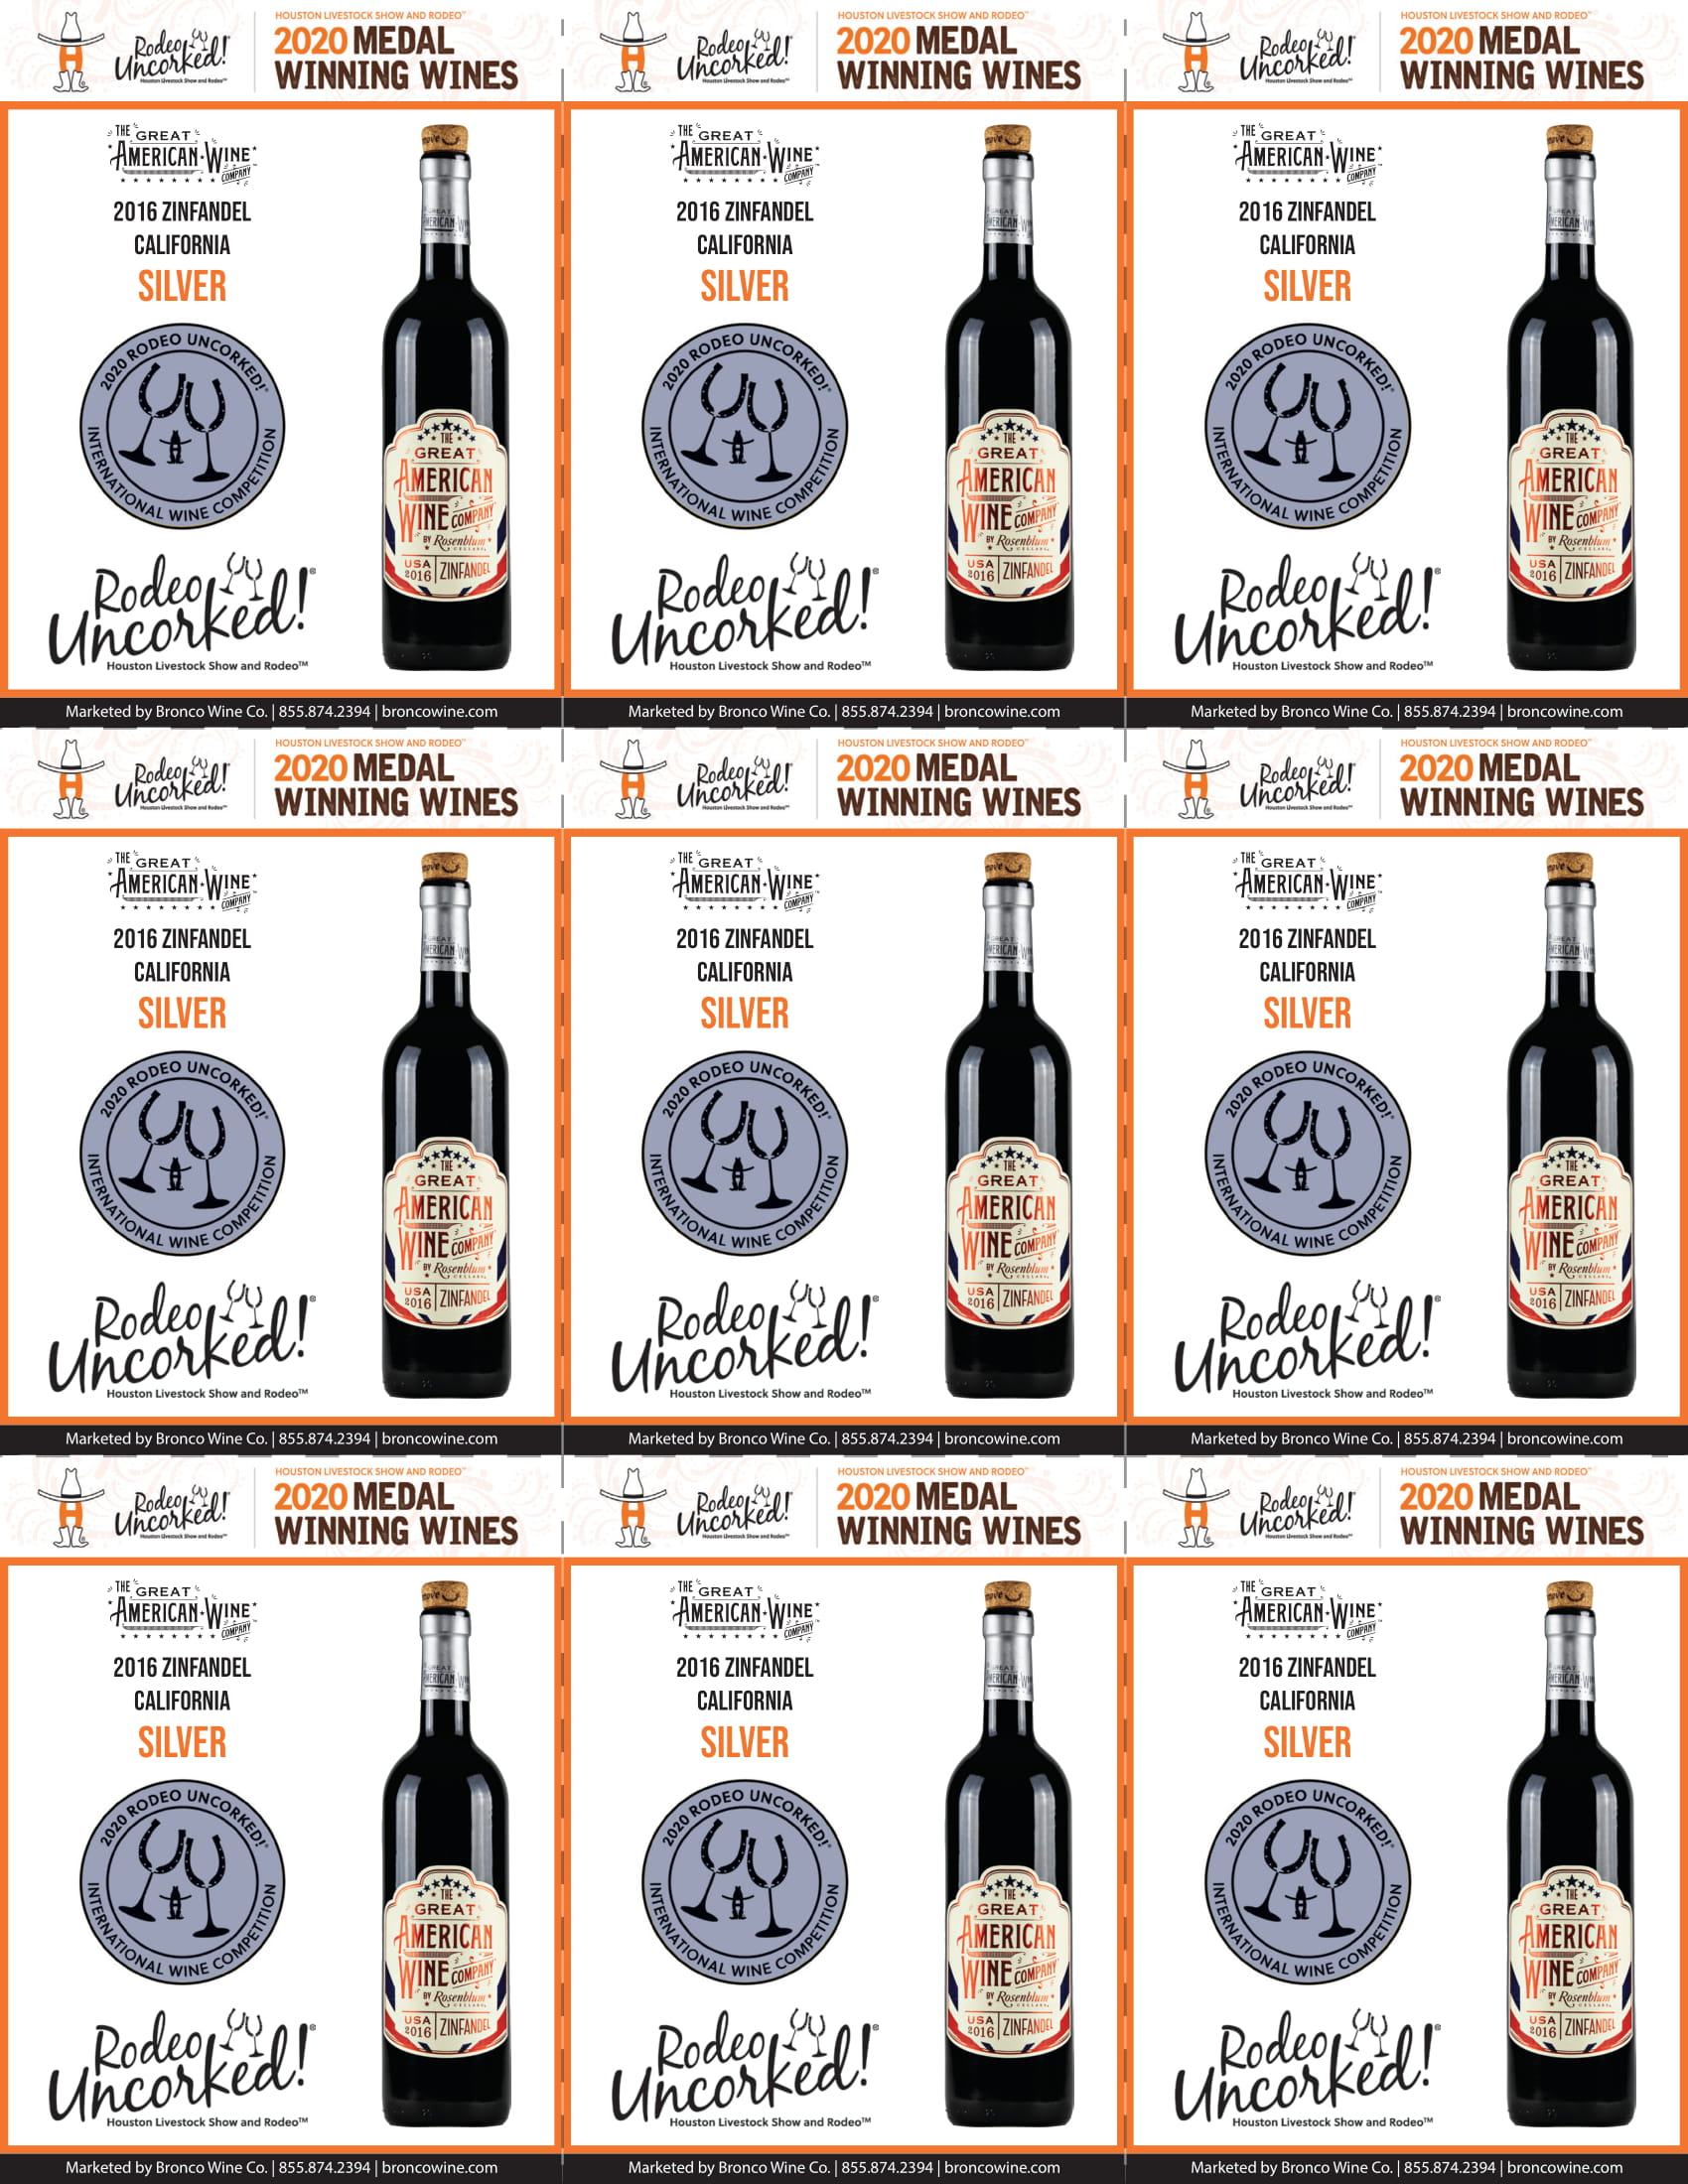 The Great American Wine Company Houston Rodeo Uncorked Shelf talkers